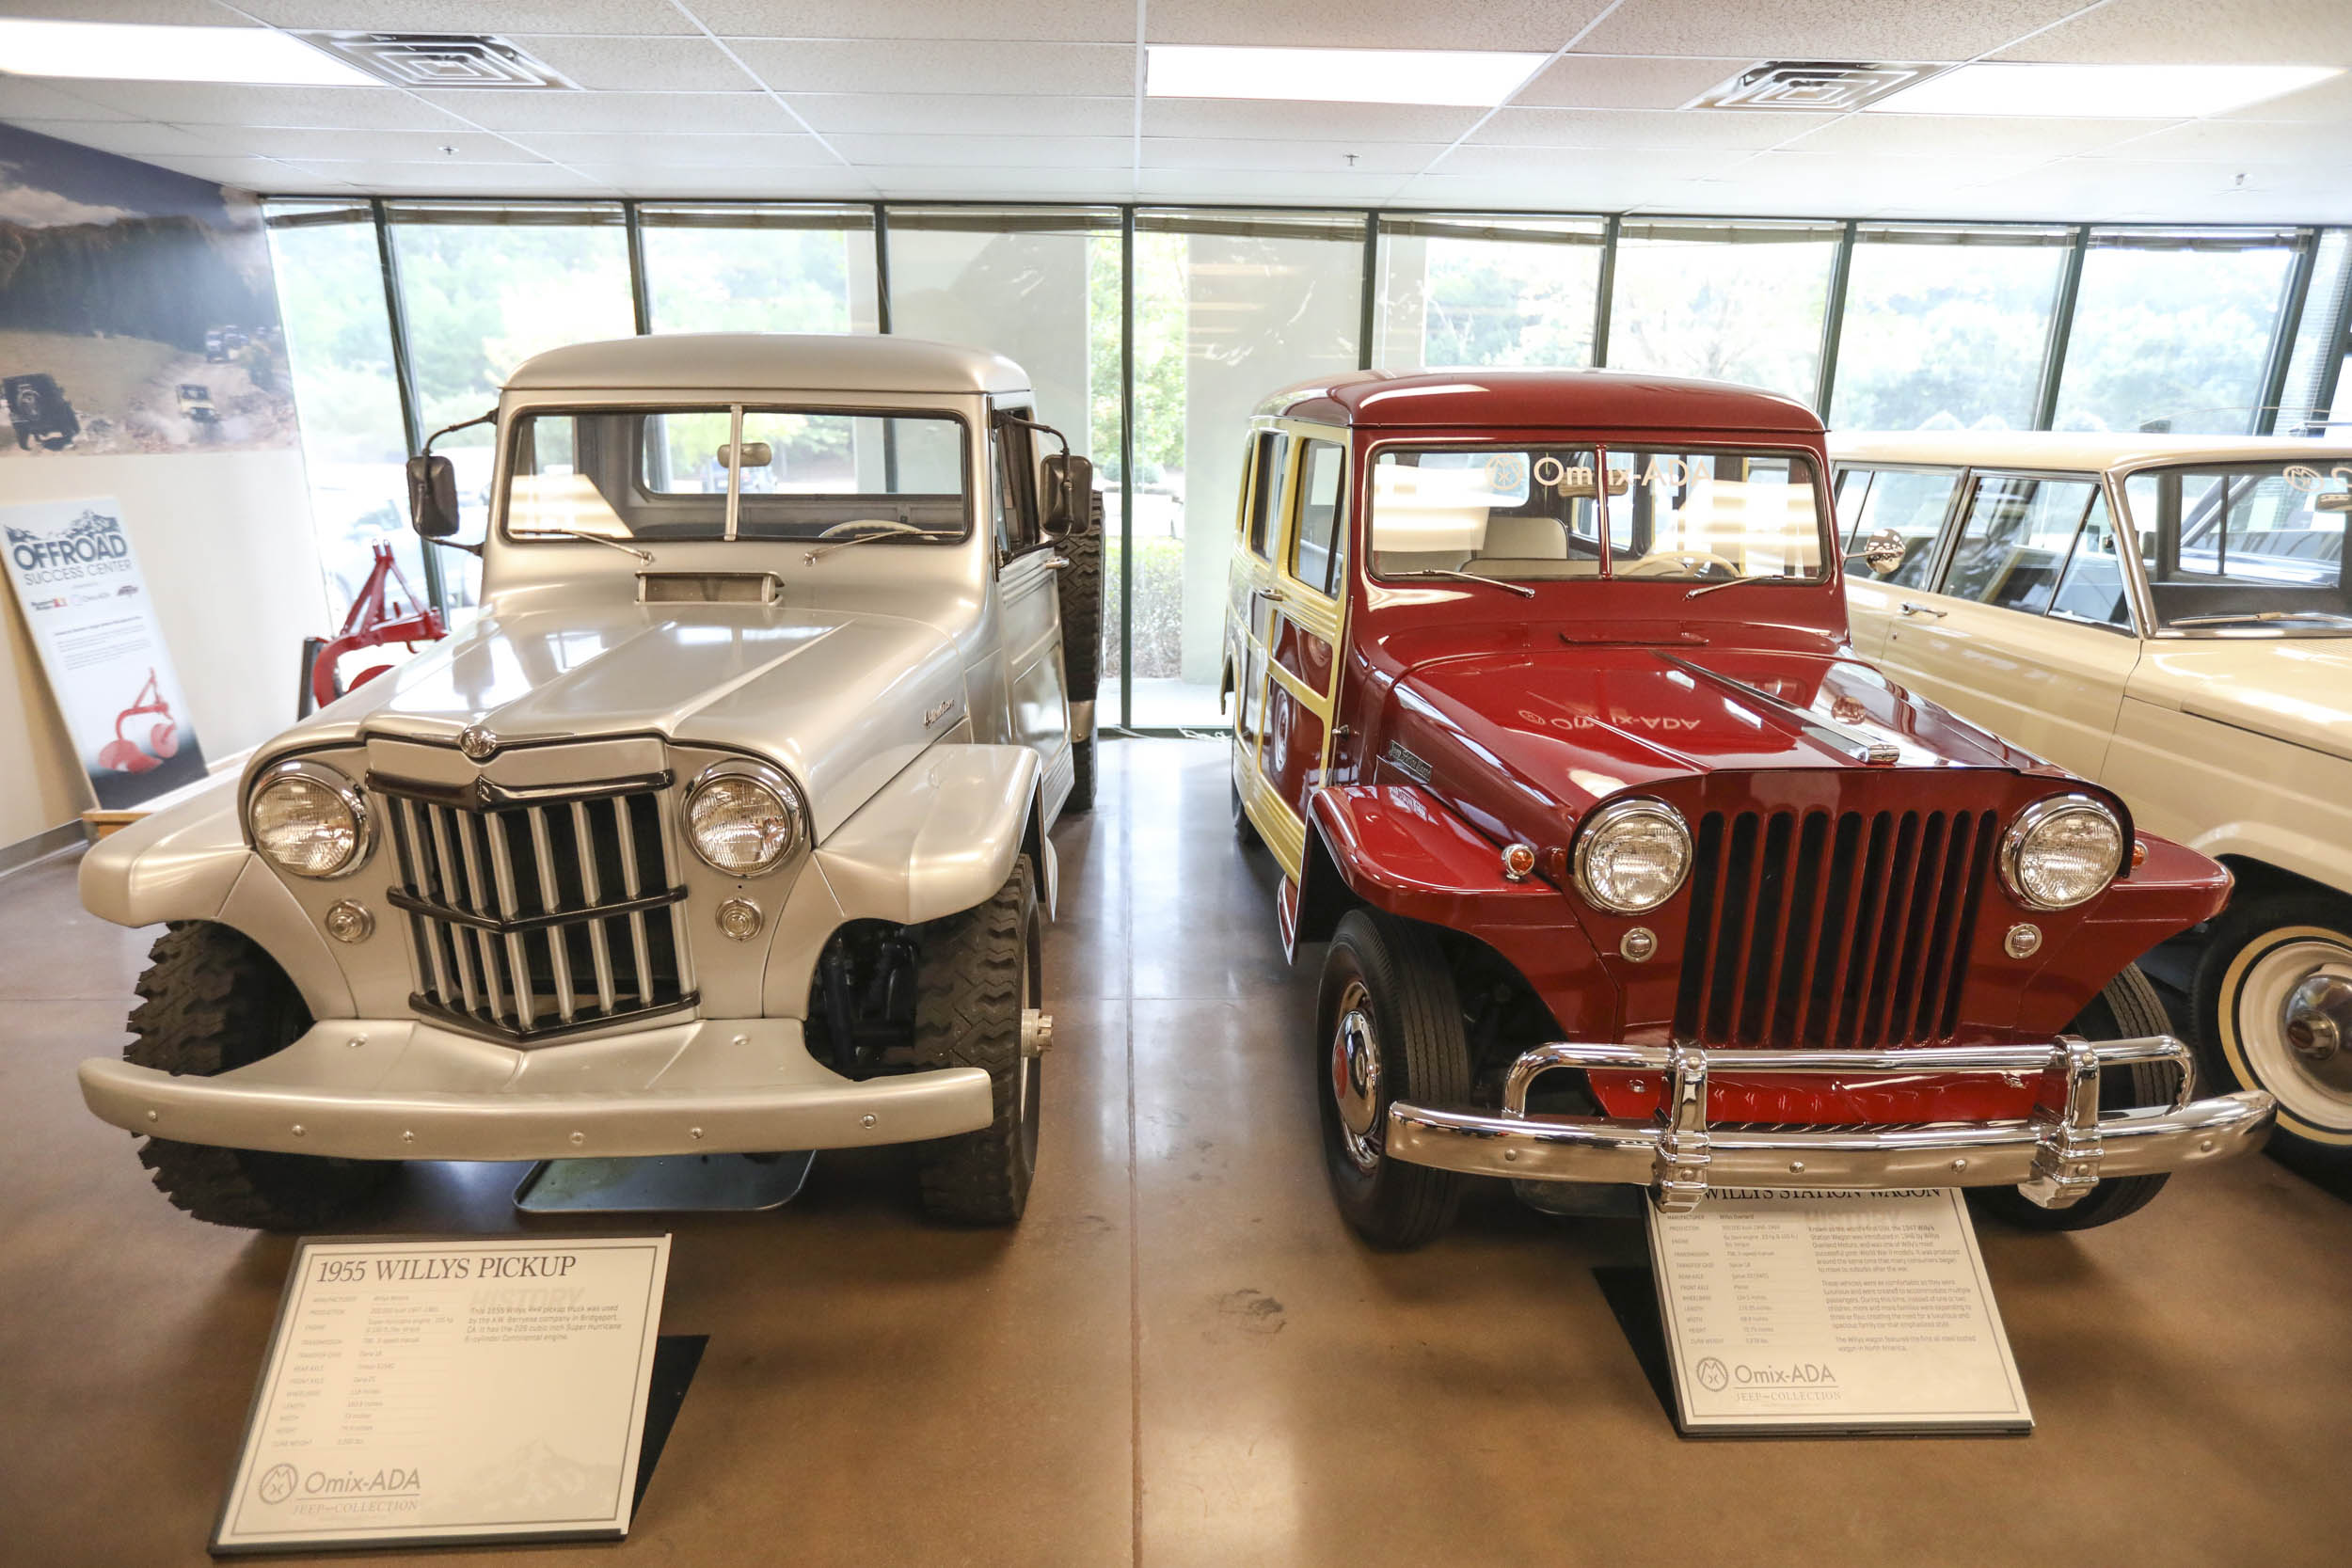 The Willys Wagon is one of the oldest truck-based SUVs.